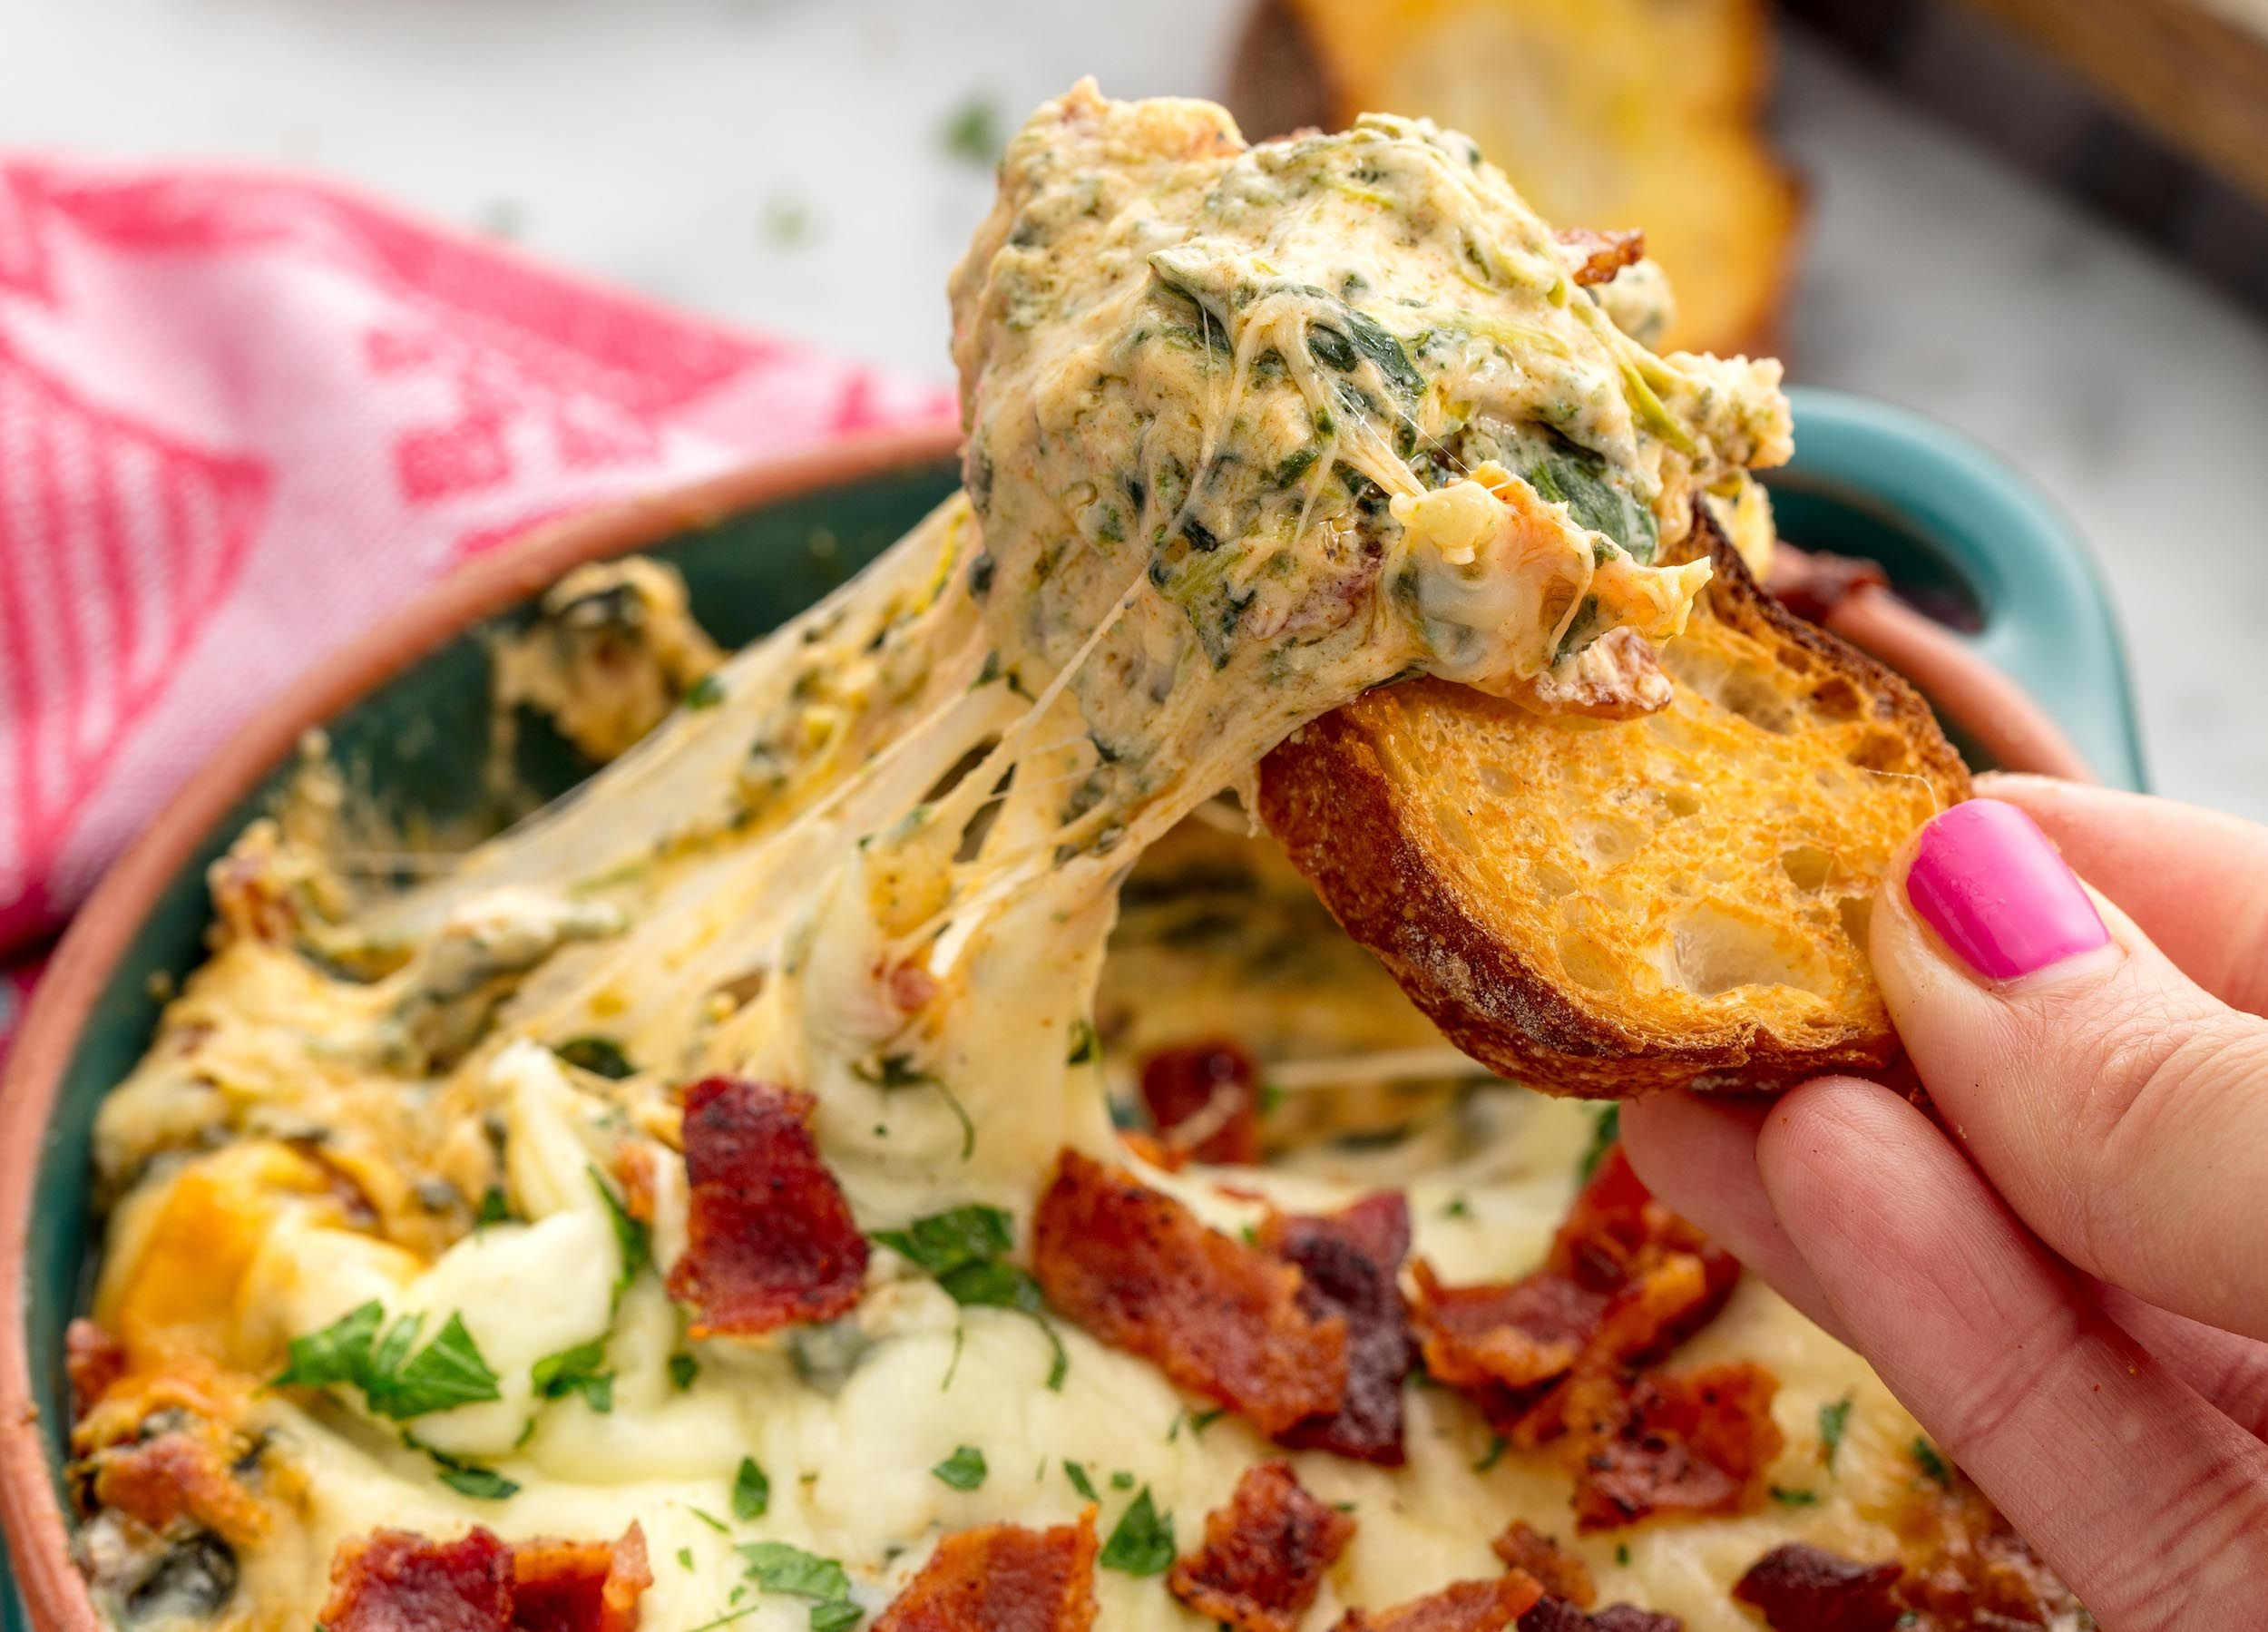 14 Best Spinach Dip Recipes Easy Ways to Make Homemade Spinach Dip